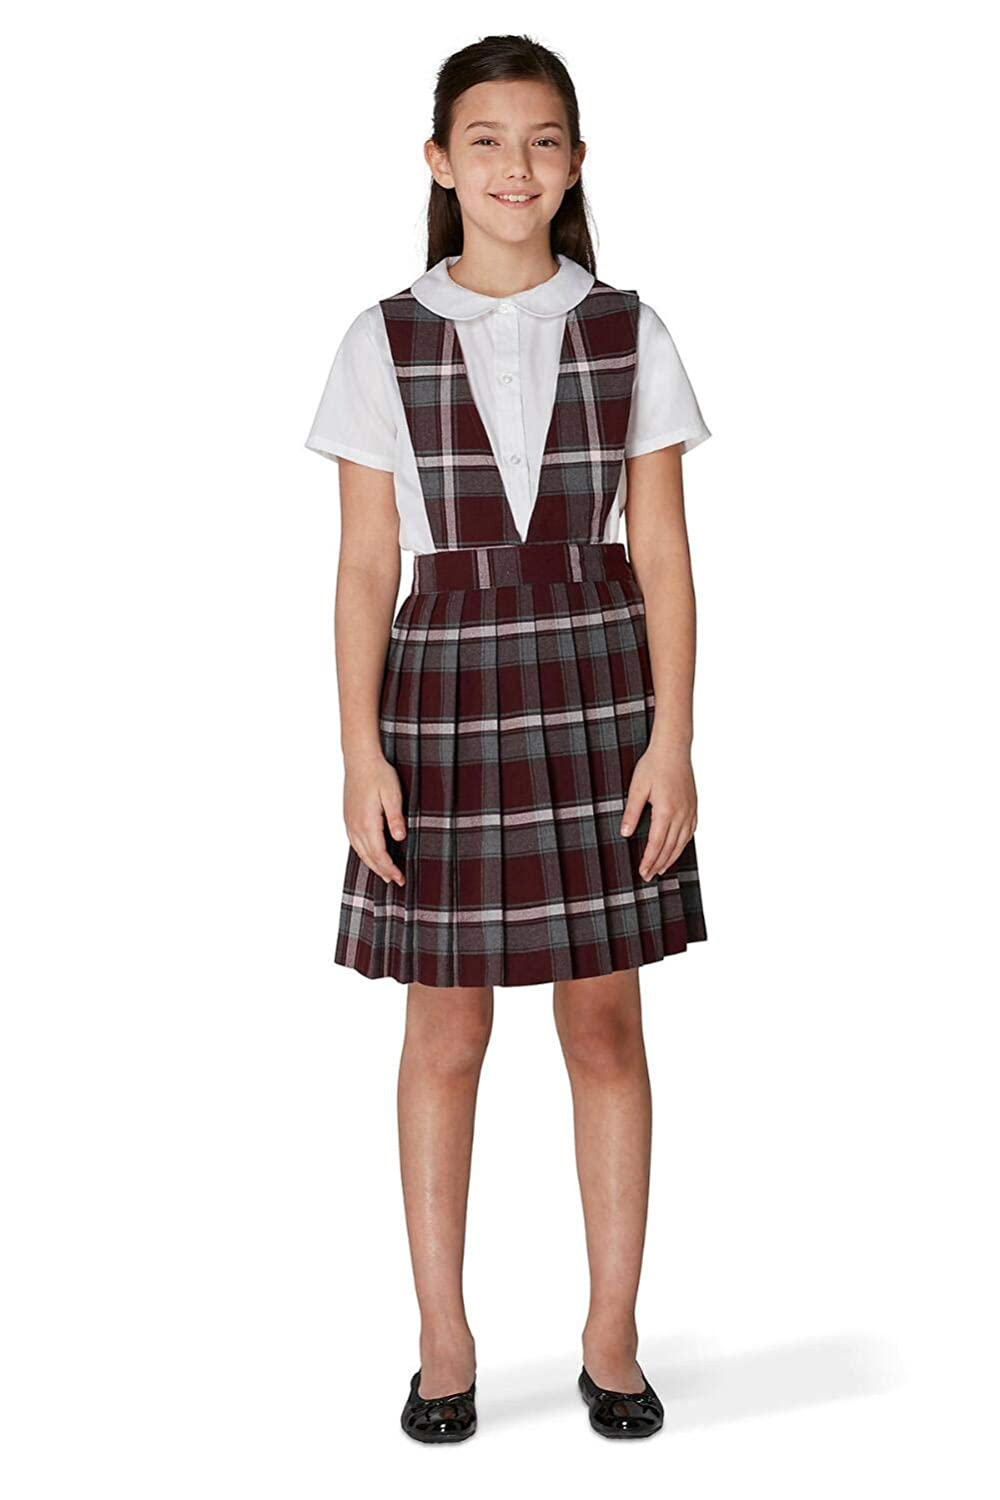 French Toast V-Neck Pleated Plaid Jumper(Toddler Size) French Toast School Uniforms 1047Q BRGP 4T